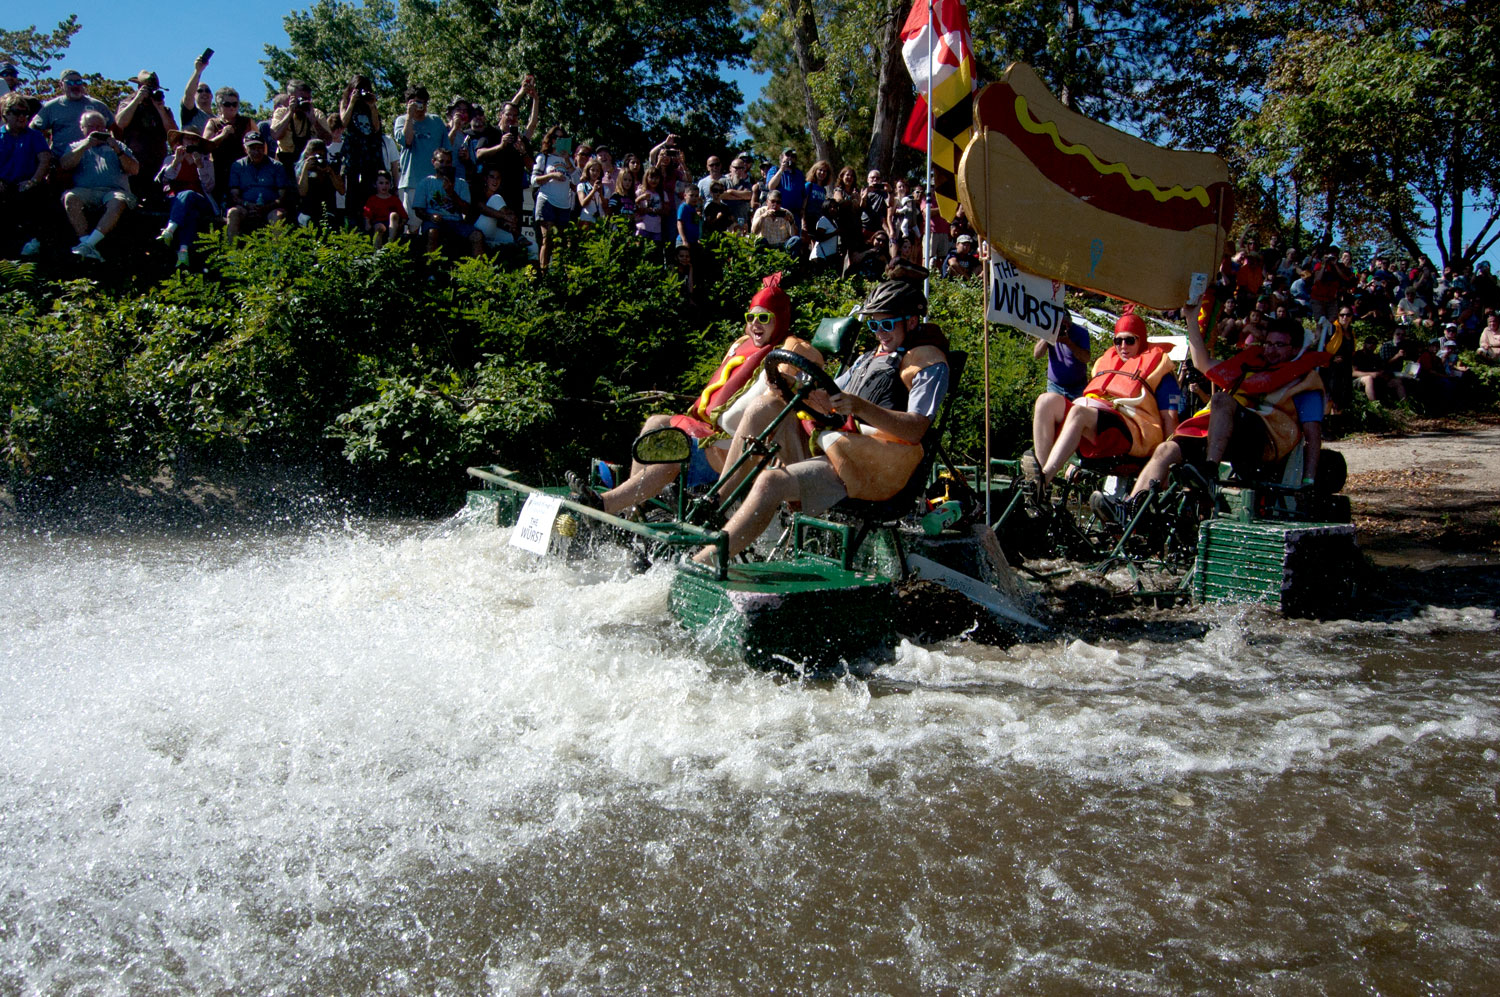 """The Wurst"" by students from Jemicy High School in Maryland splashes into the Merrimack River. (Greg Cook/WBUR)"